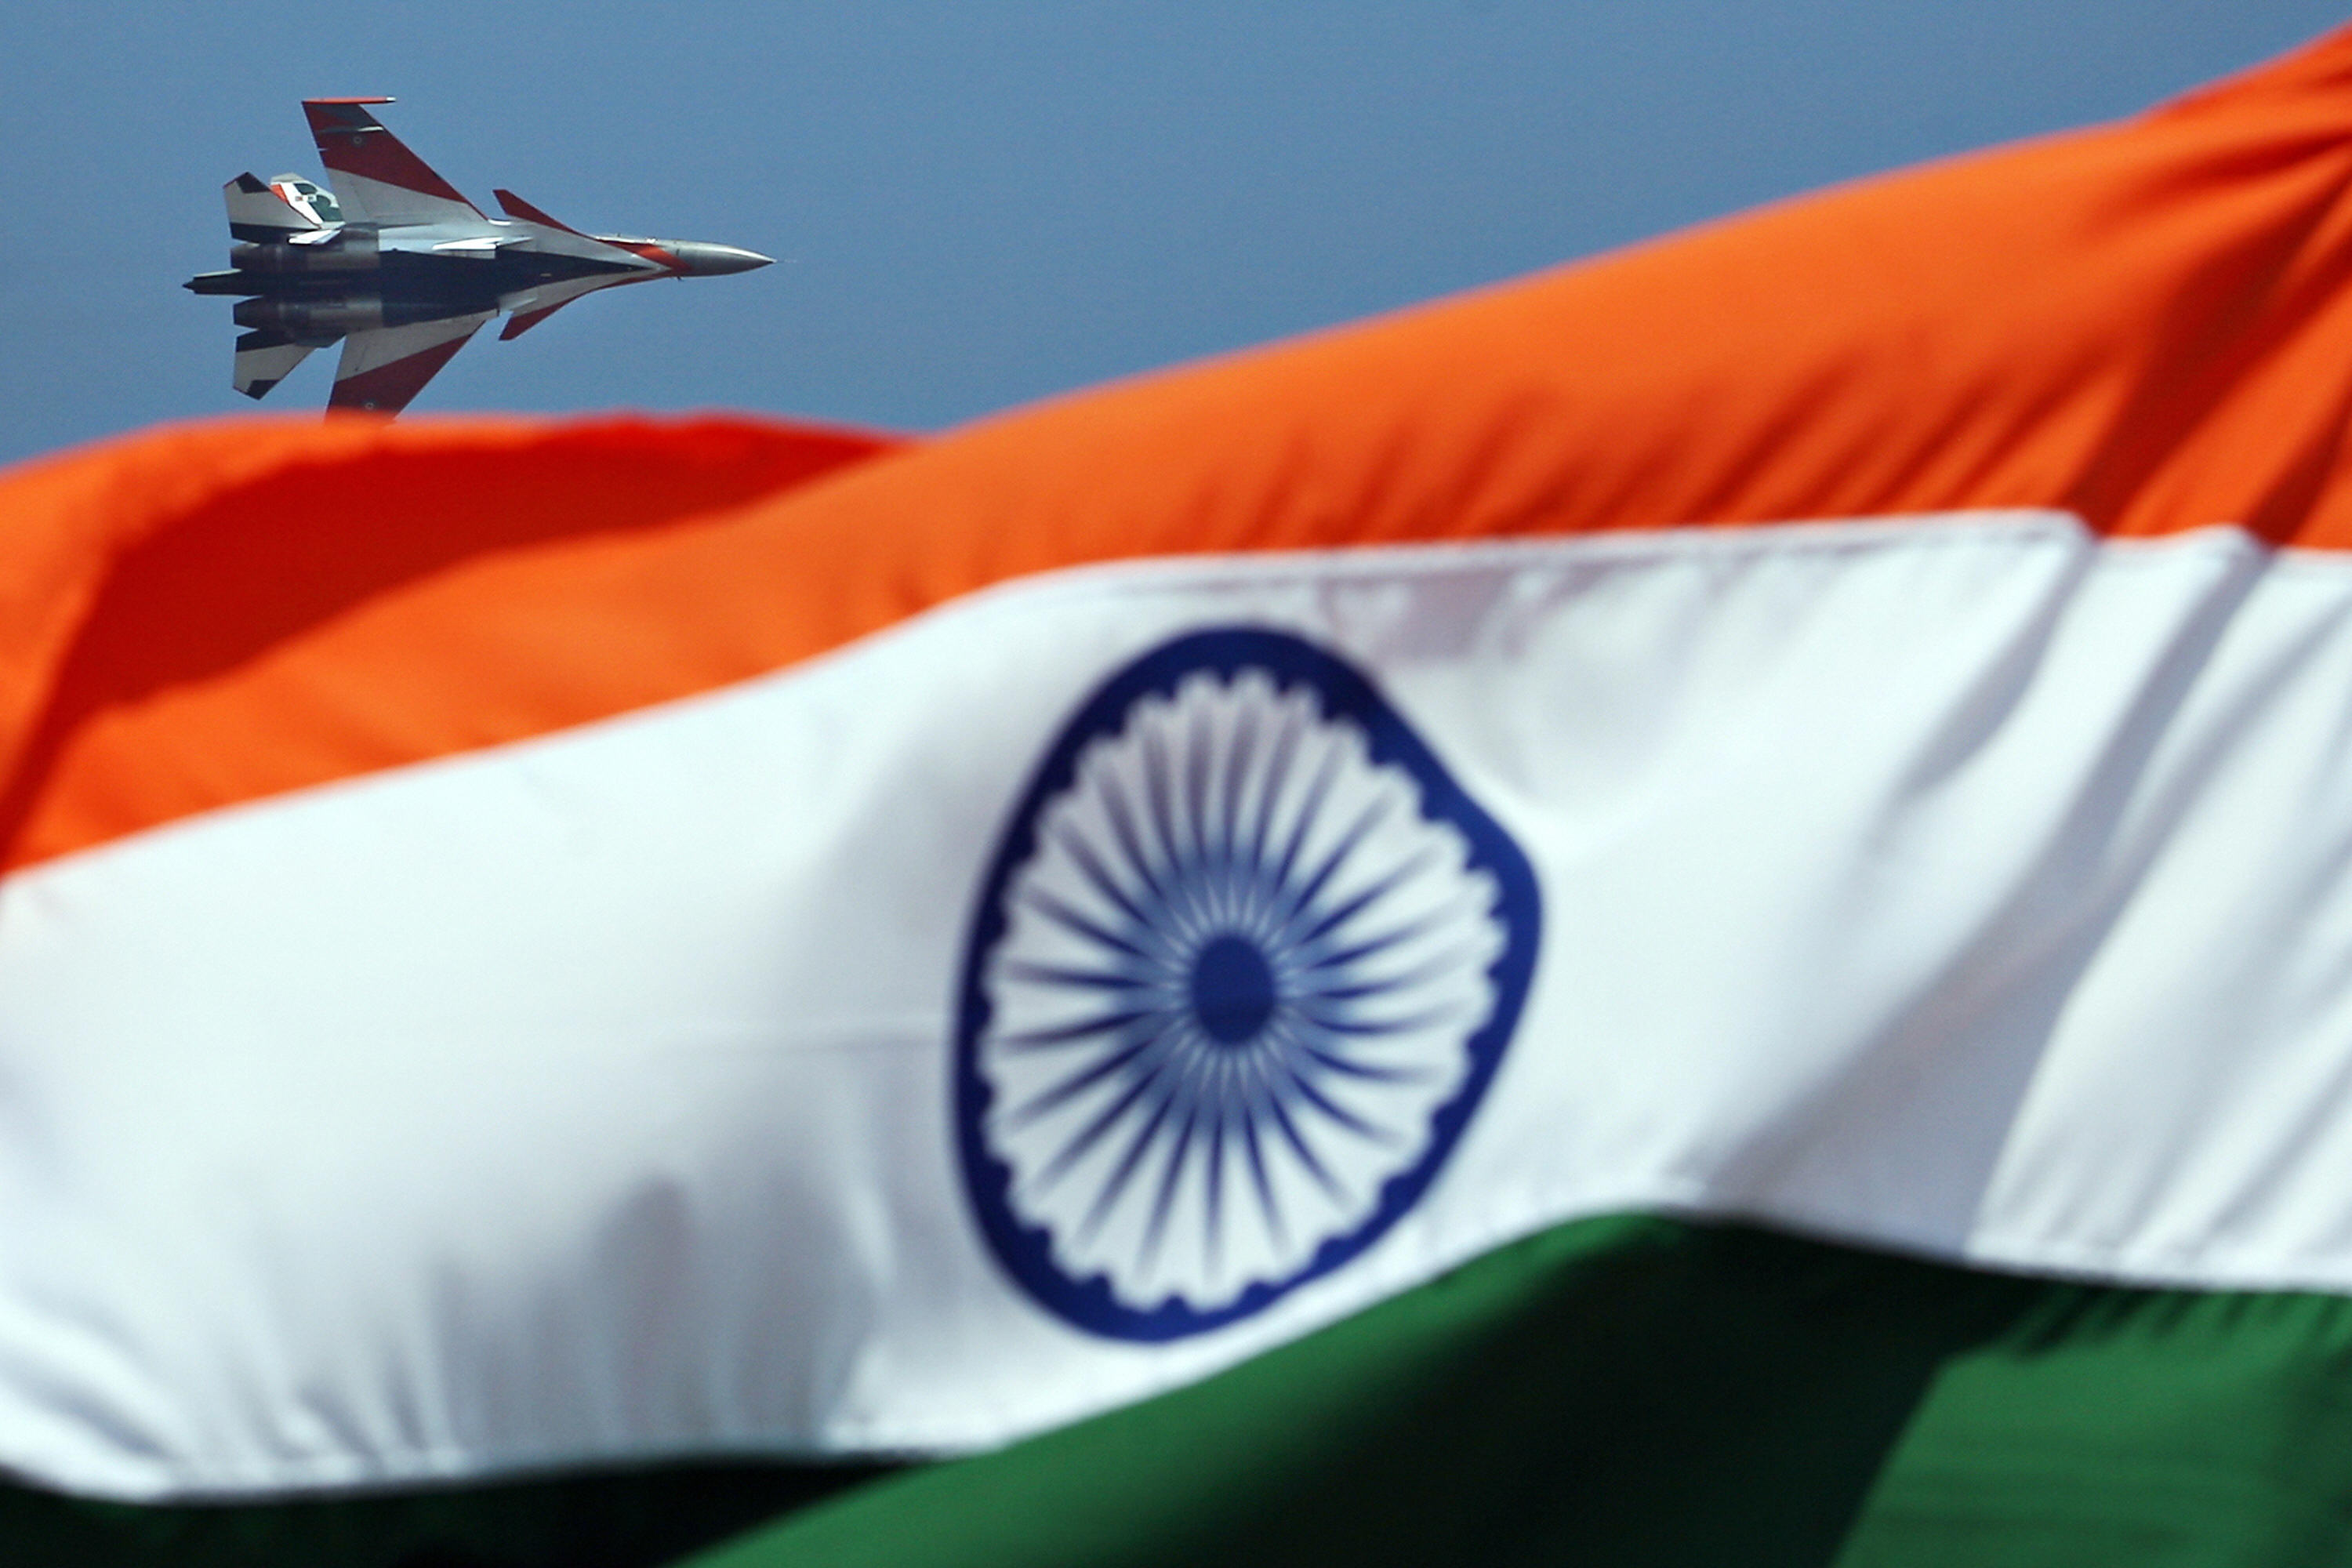 India becomes member of key export control regime